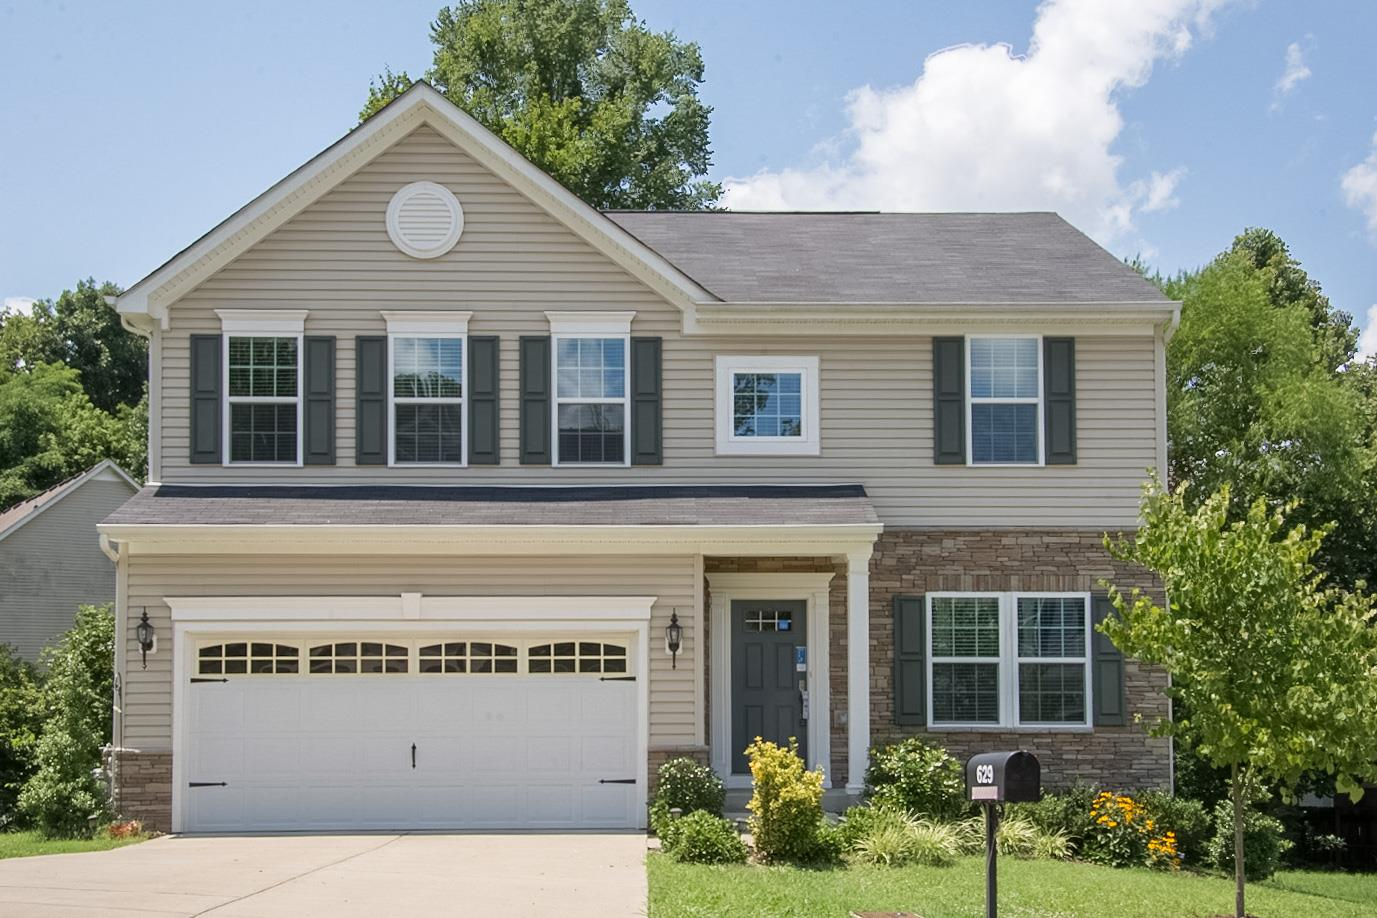 629 Summerbreeze Ln, Nashville-Antioch in Davidson County County, TN 37013 Home for Sale